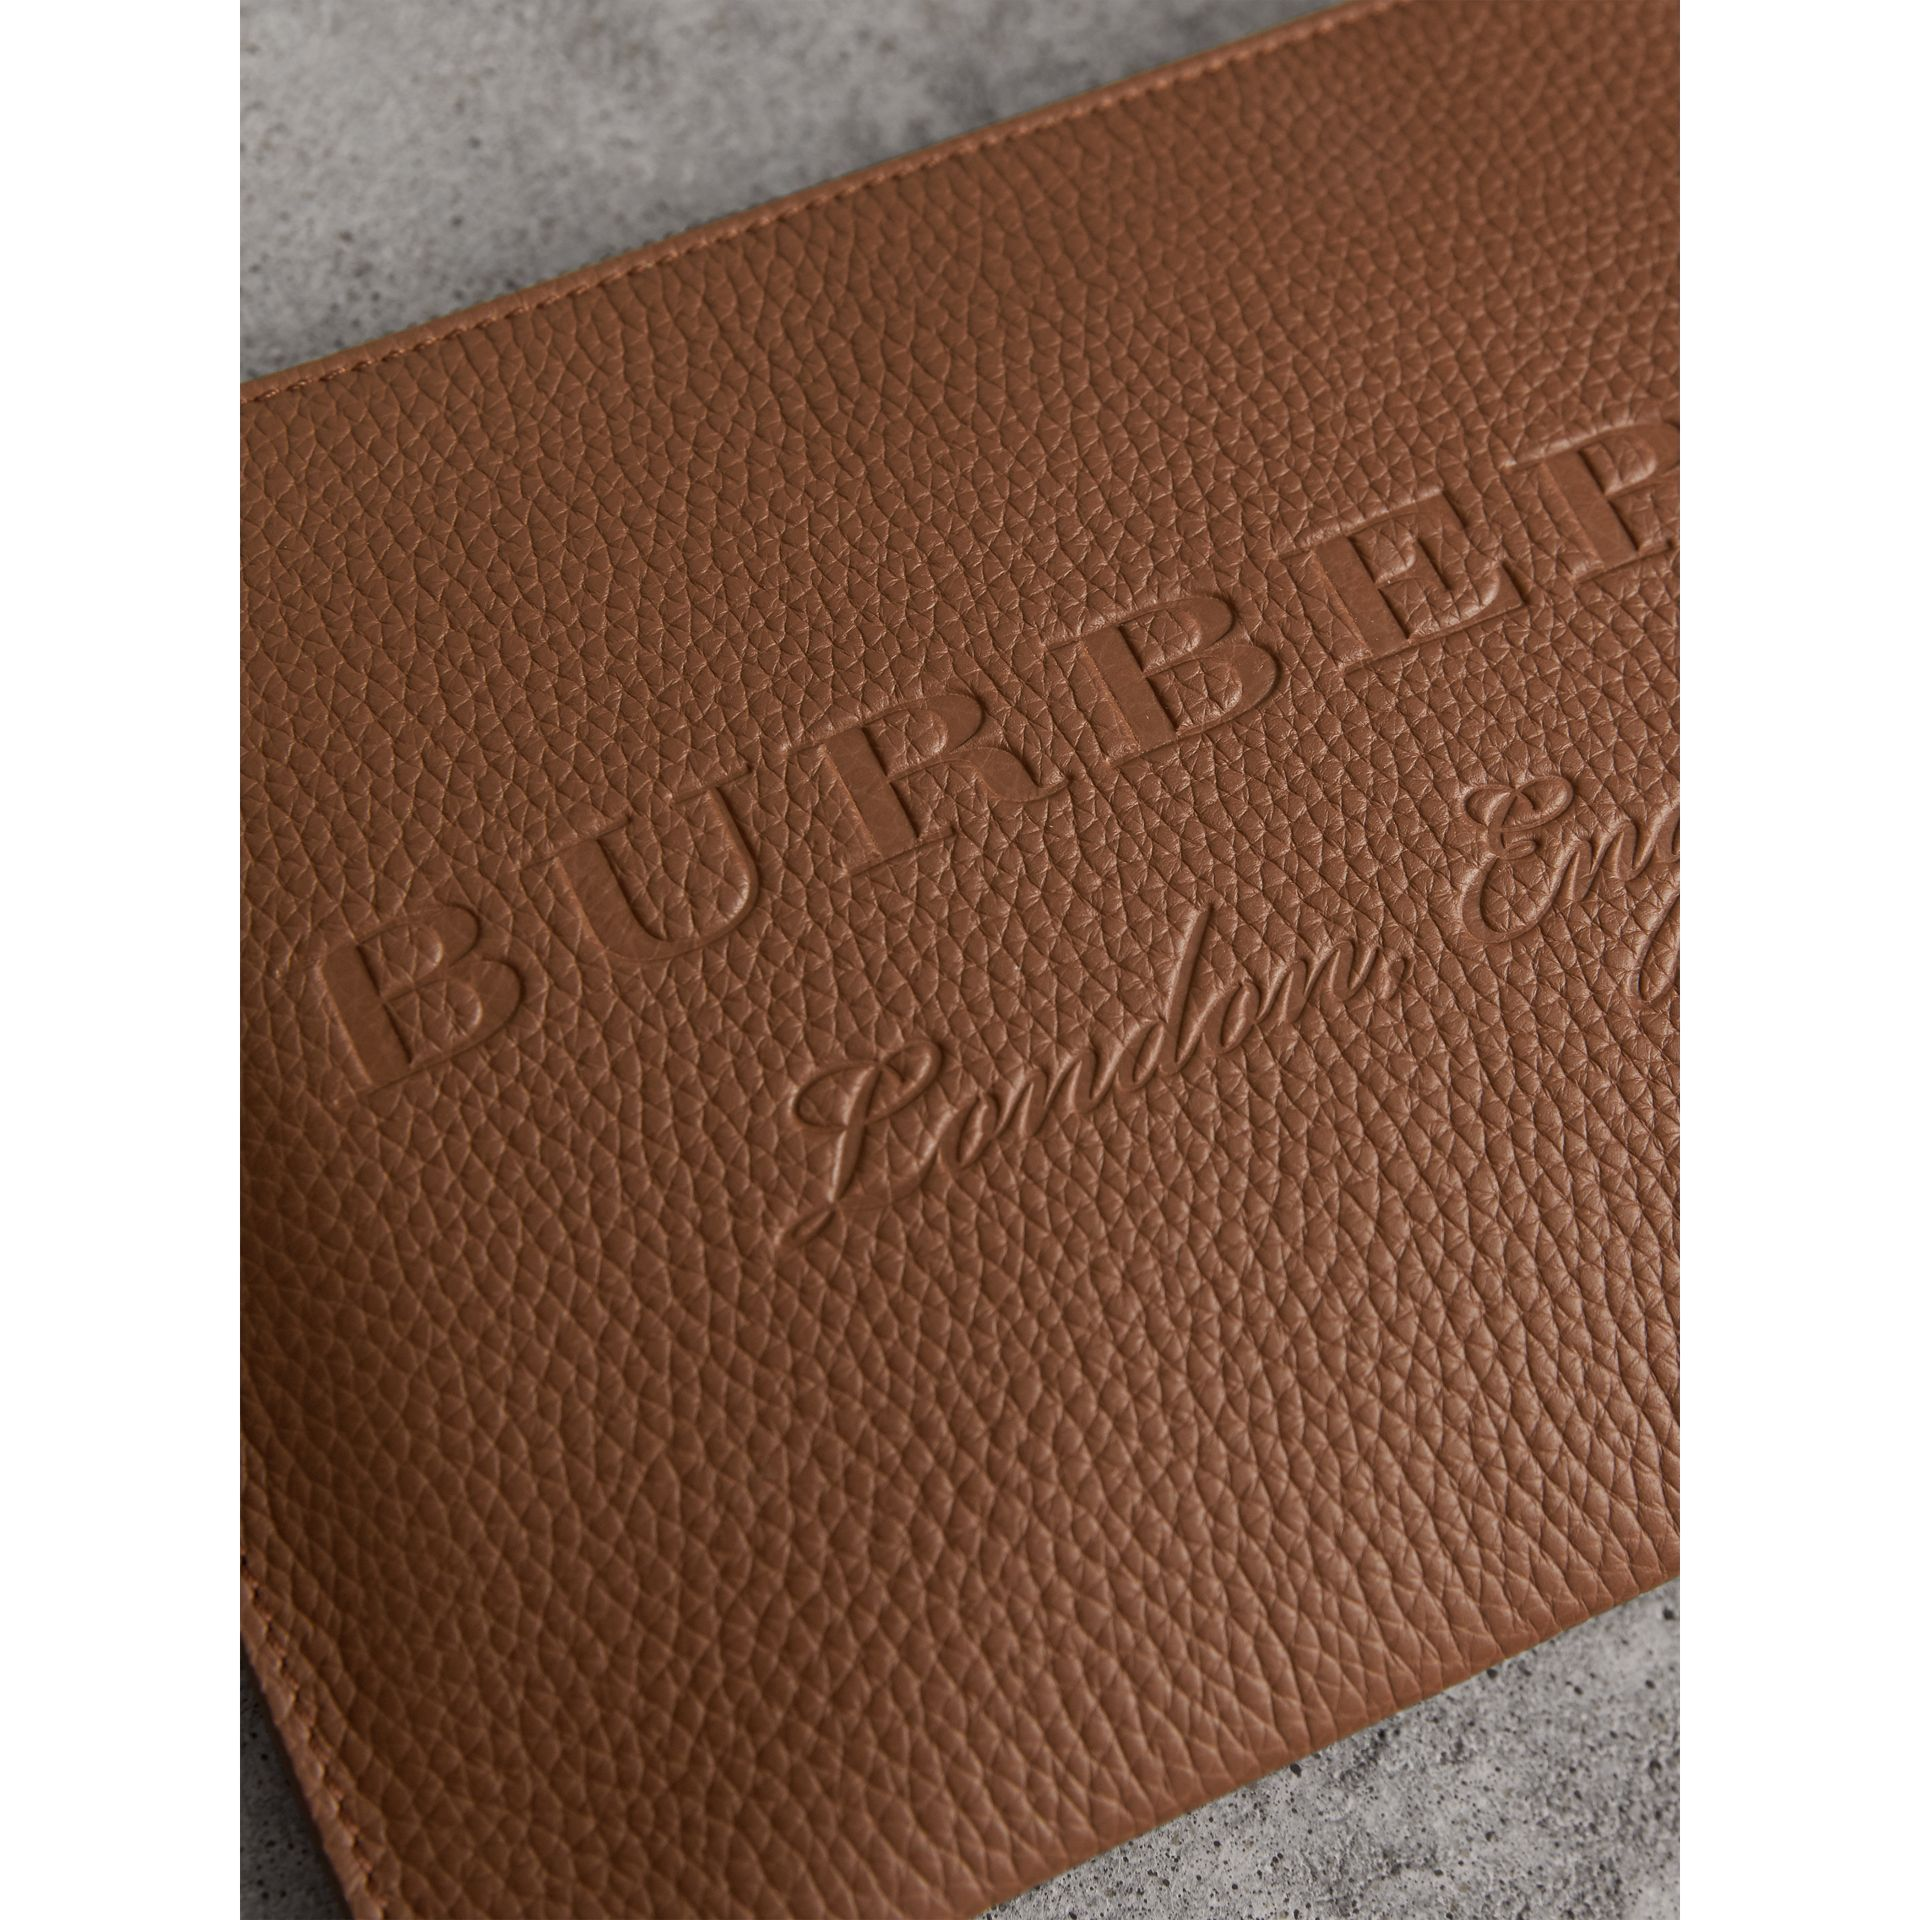 Embossed Leather Clutch Bag in Chestnut Brown - Women | Burberry United Kingdom - gallery image 2